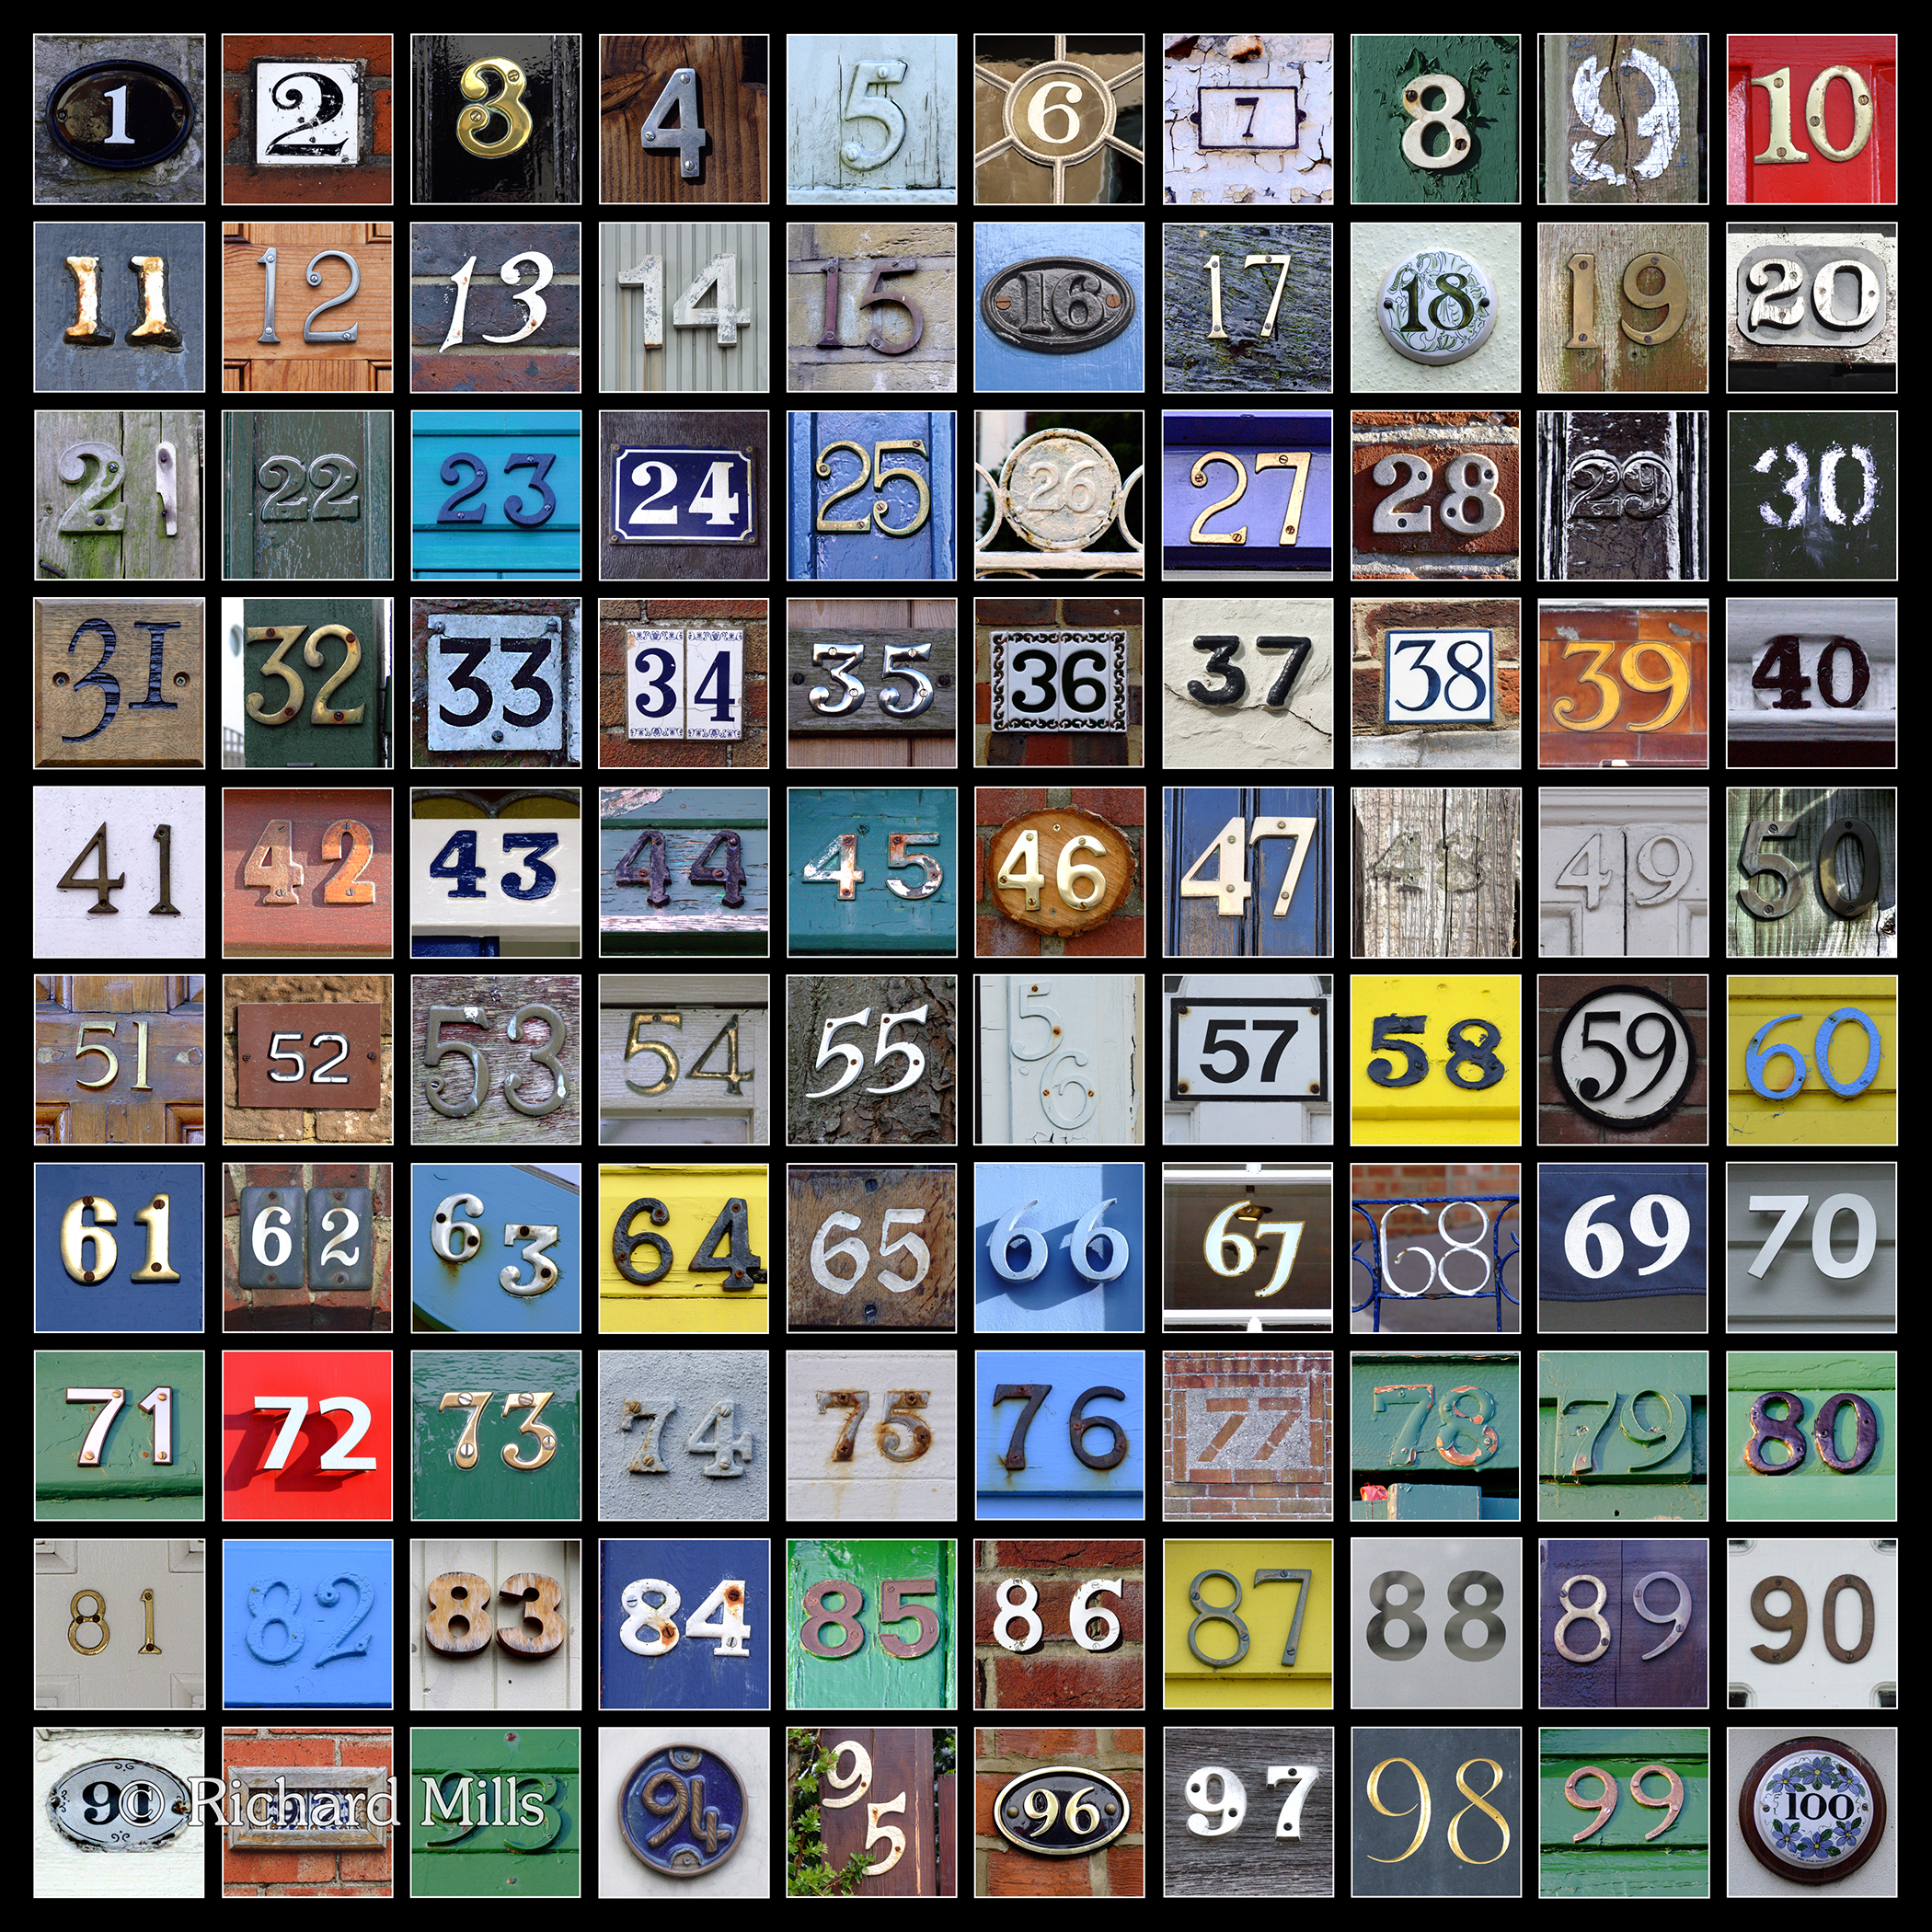 1-100 Number Square